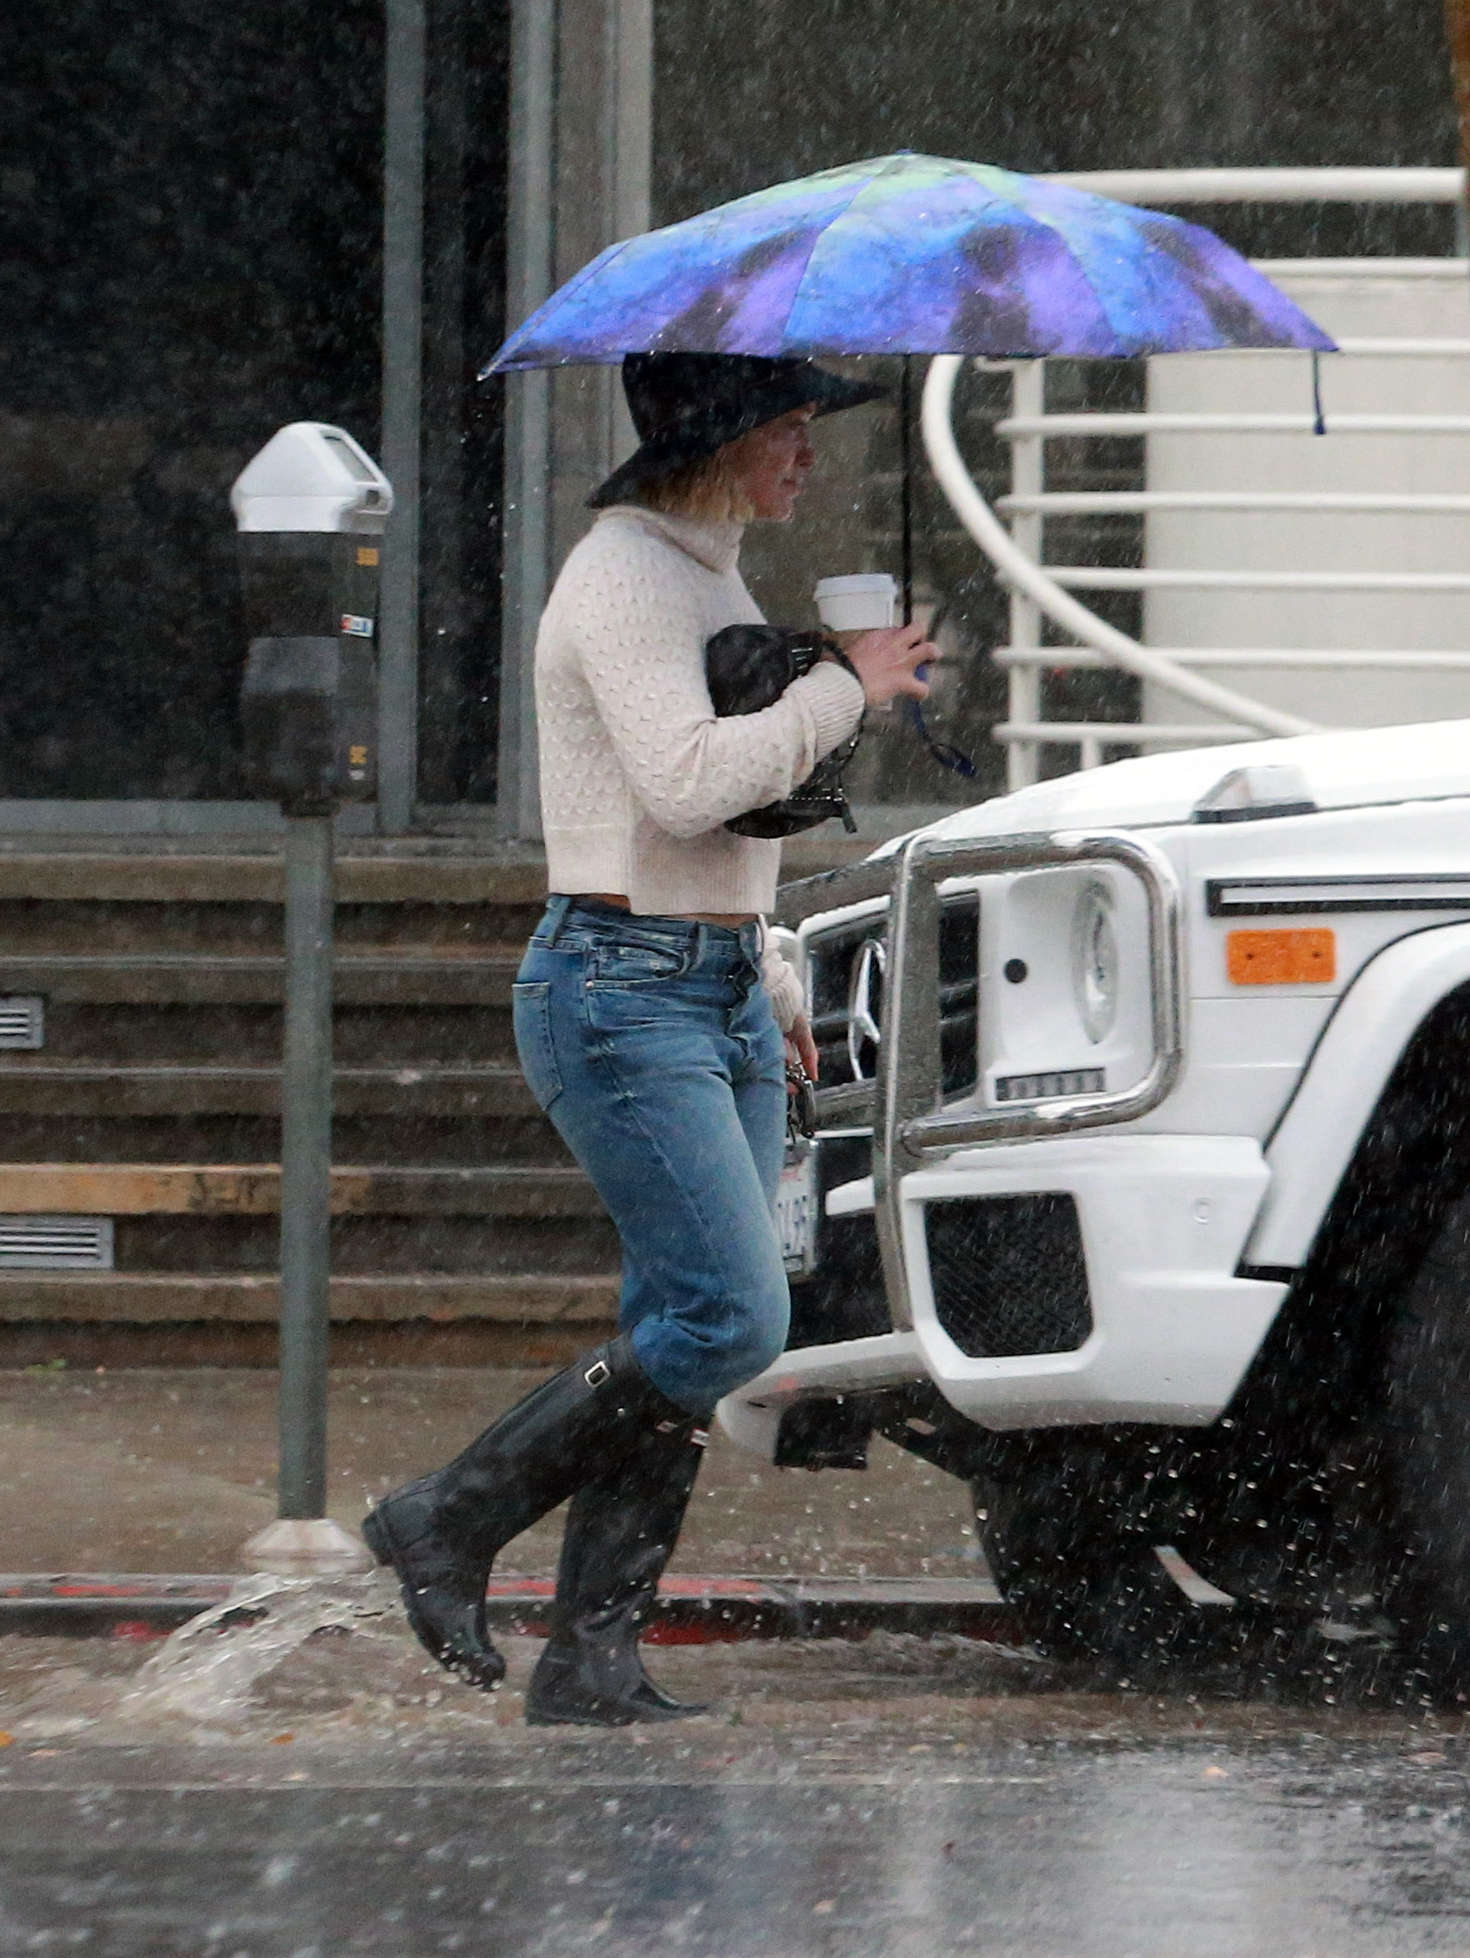 Hilary Duff 2016 : Hilary Duff in Jeans out on a rainy day -21